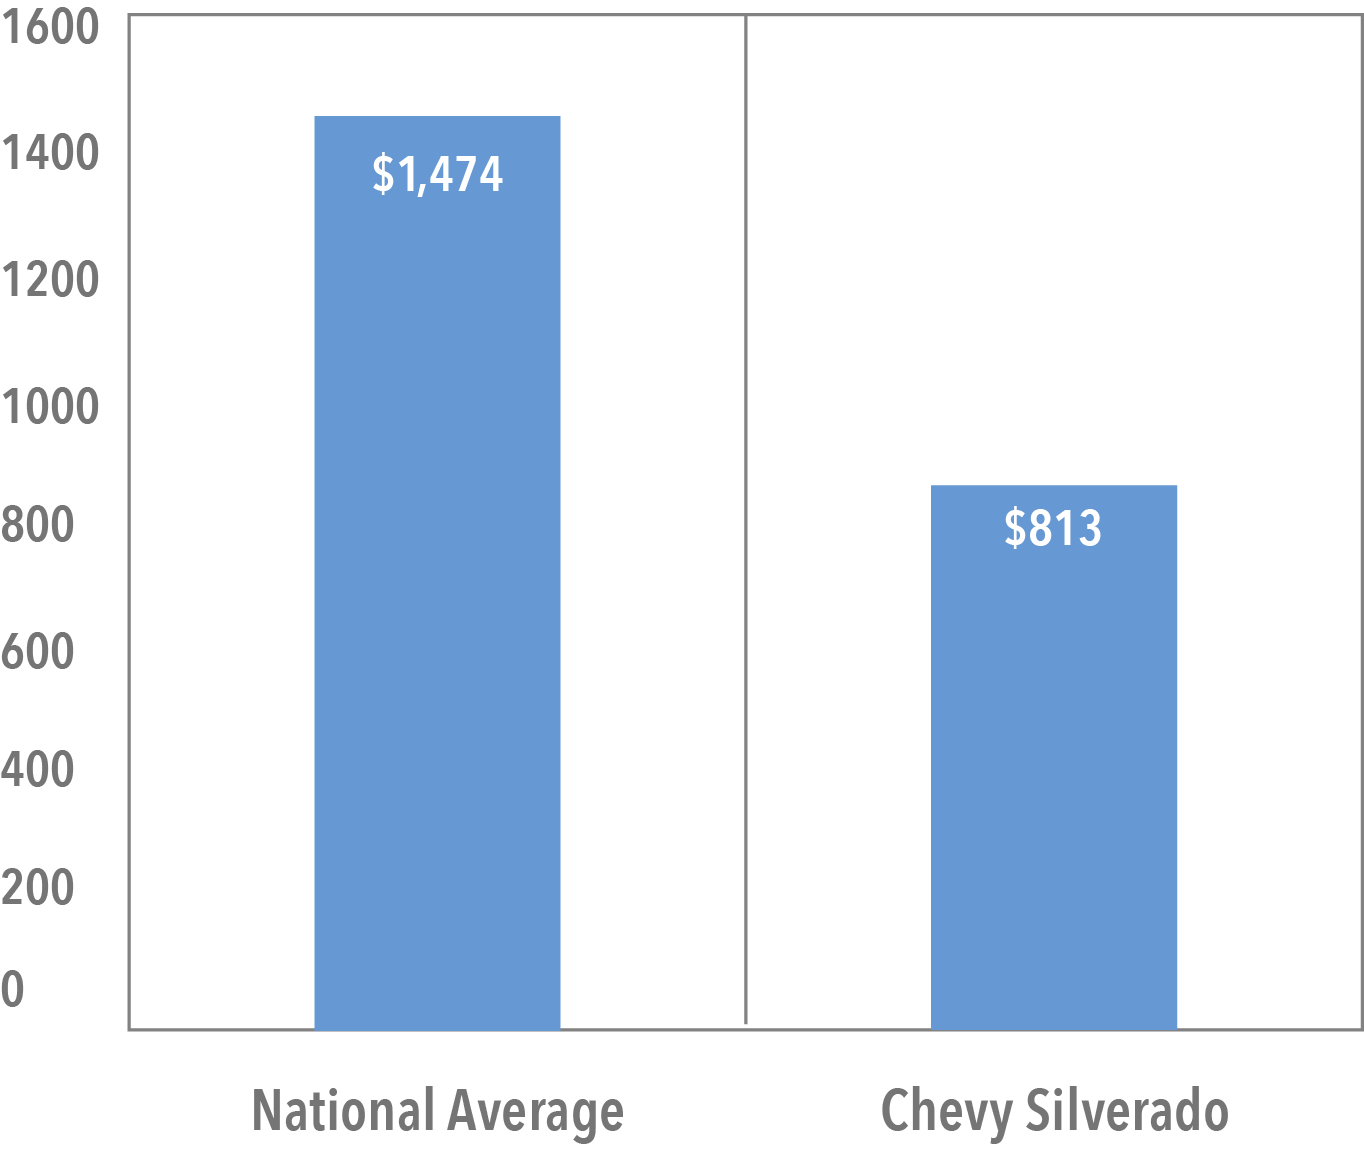 Average Cost of Silverado Insurance